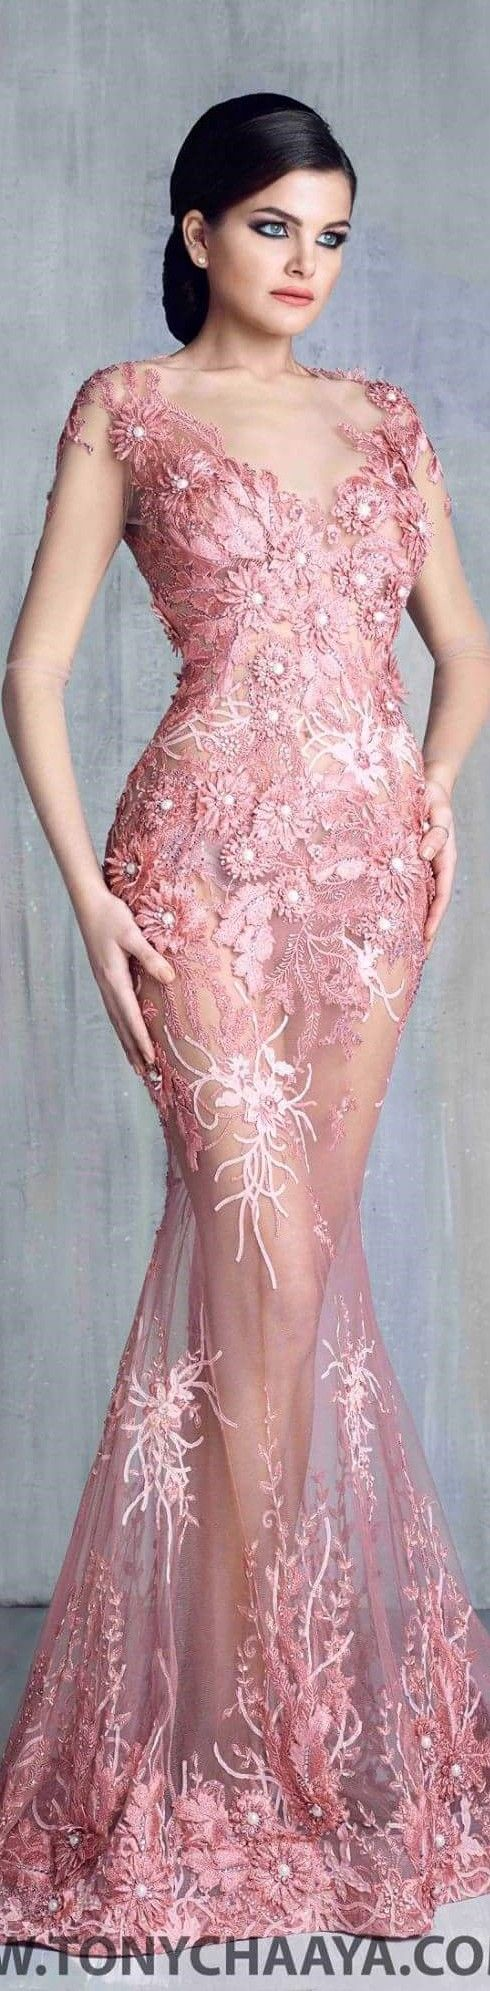 334 best vestidos para toda ocacione images on Pinterest | Long ...